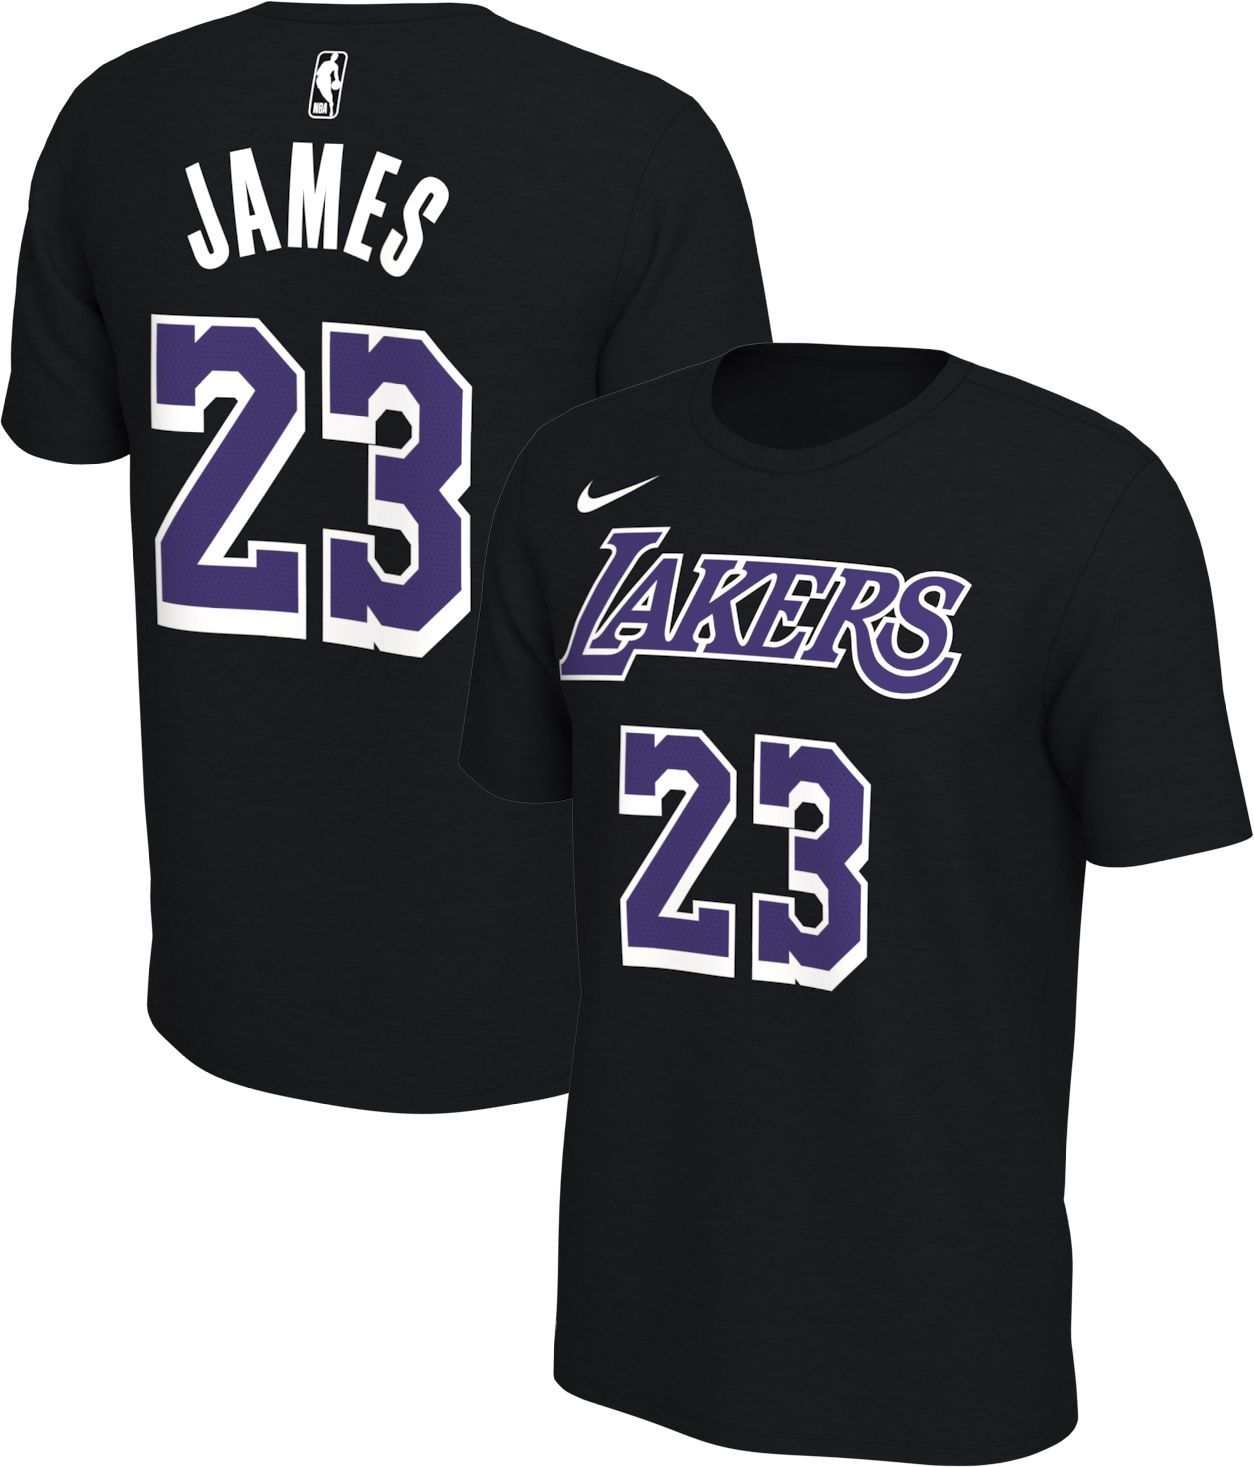 half off 04dbe ebf43 Nike Mens Los Angeles Lakers LeBron James 23 Dri-FIT Black T-Shirt